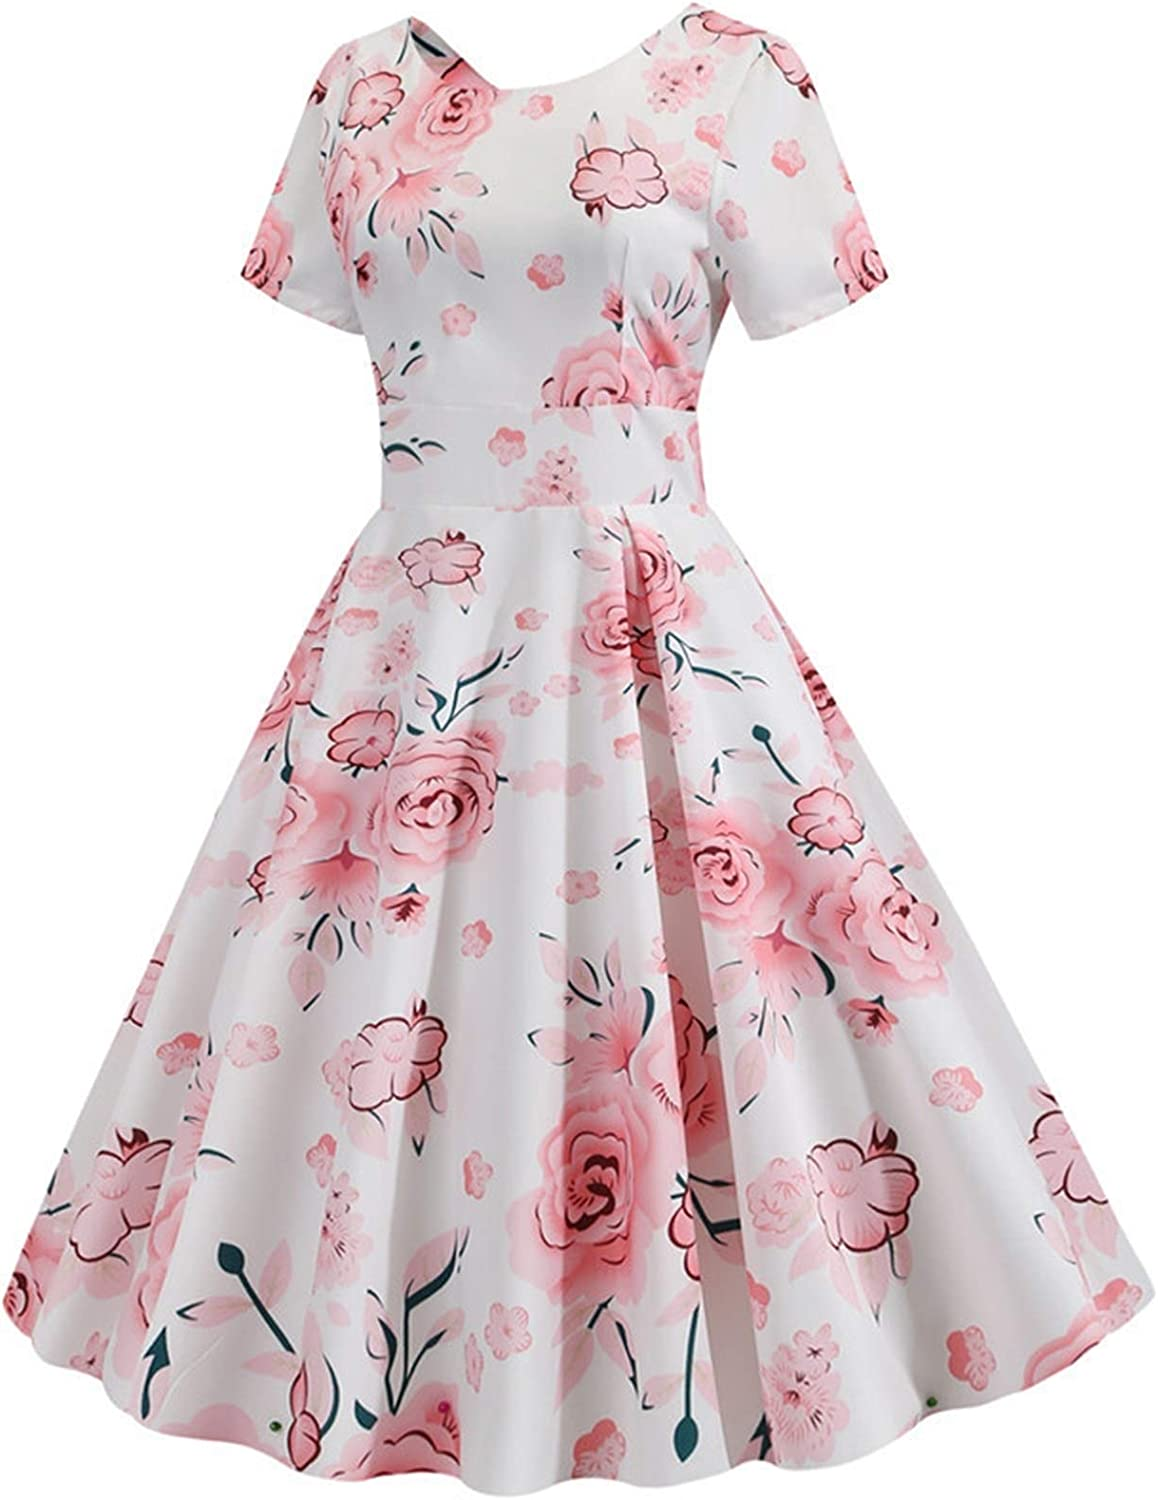 BangHaa Summer Floral Print Elegant A-line Party Dress Women Slim White Short Sleeve Swing Pin Up Vintage Dresses Plus Size Robe Femme for Beach Vacation (Color : Pettiskirt red, Size : Large)